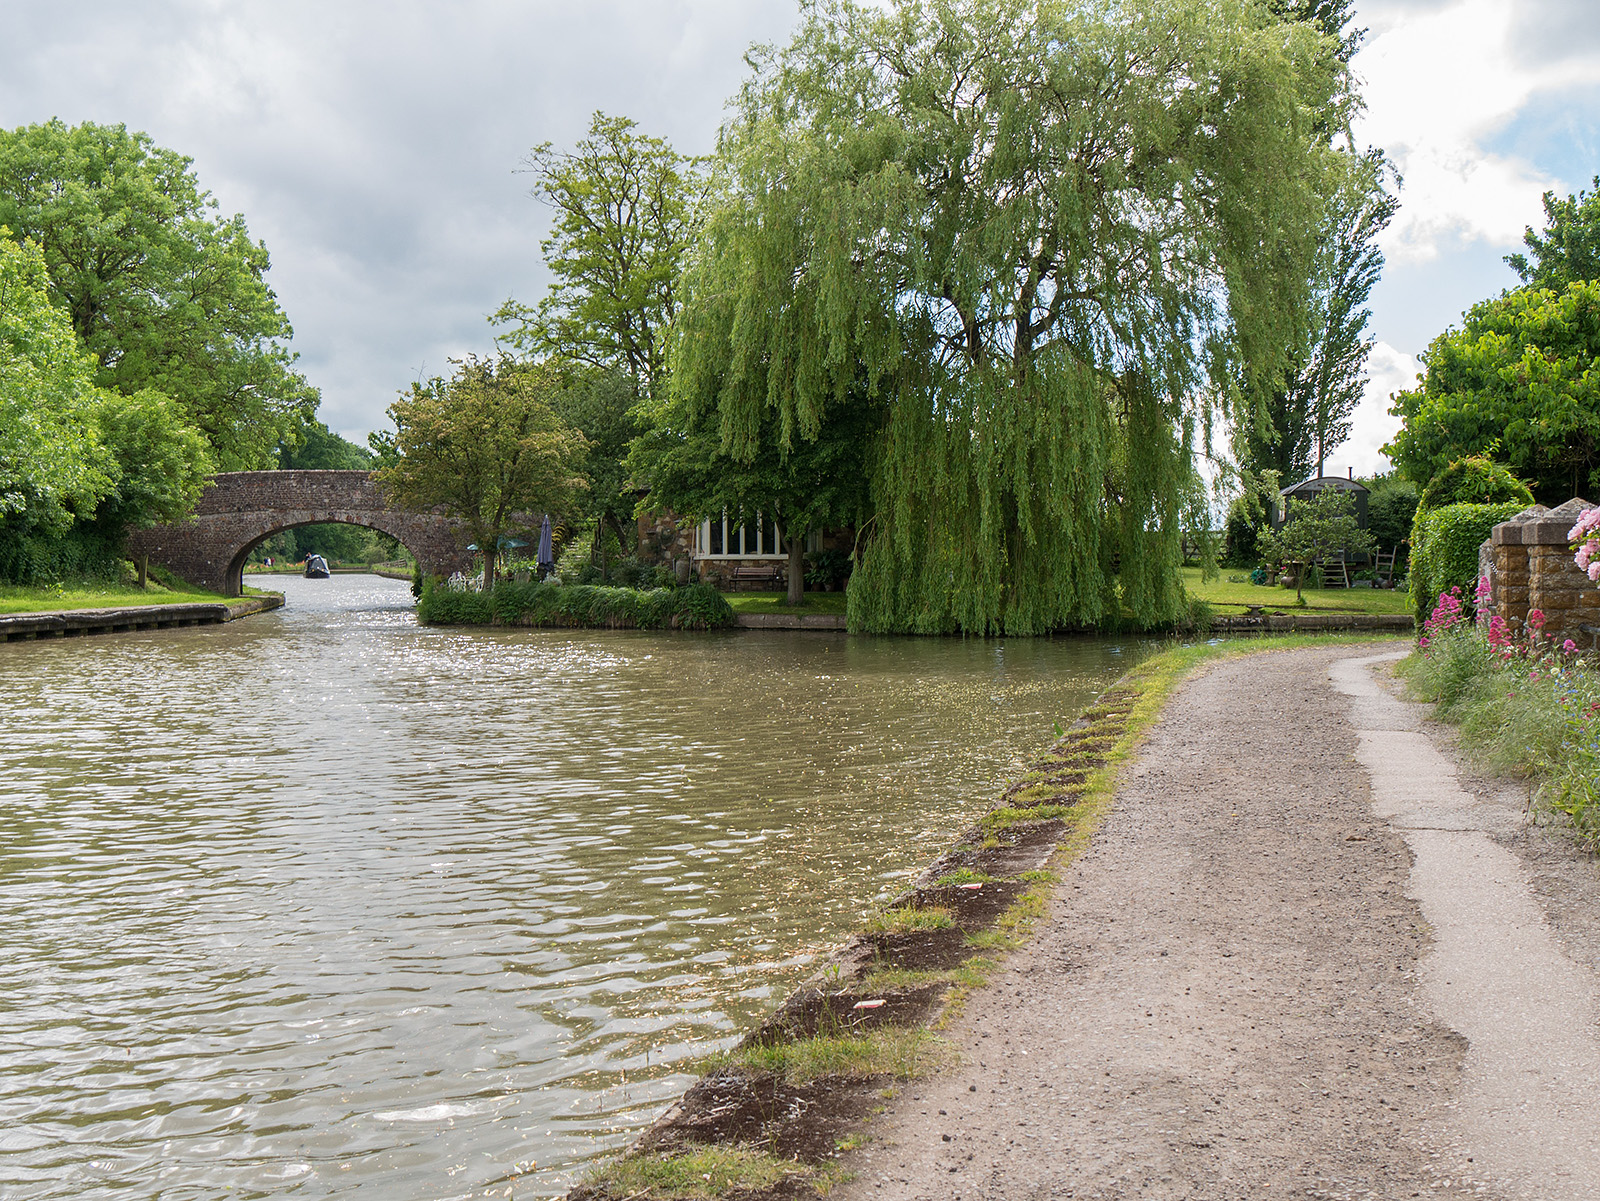 Norton Junction - off to the right the Leicester Canal, off to the left the Grand Union continues towards Braunston